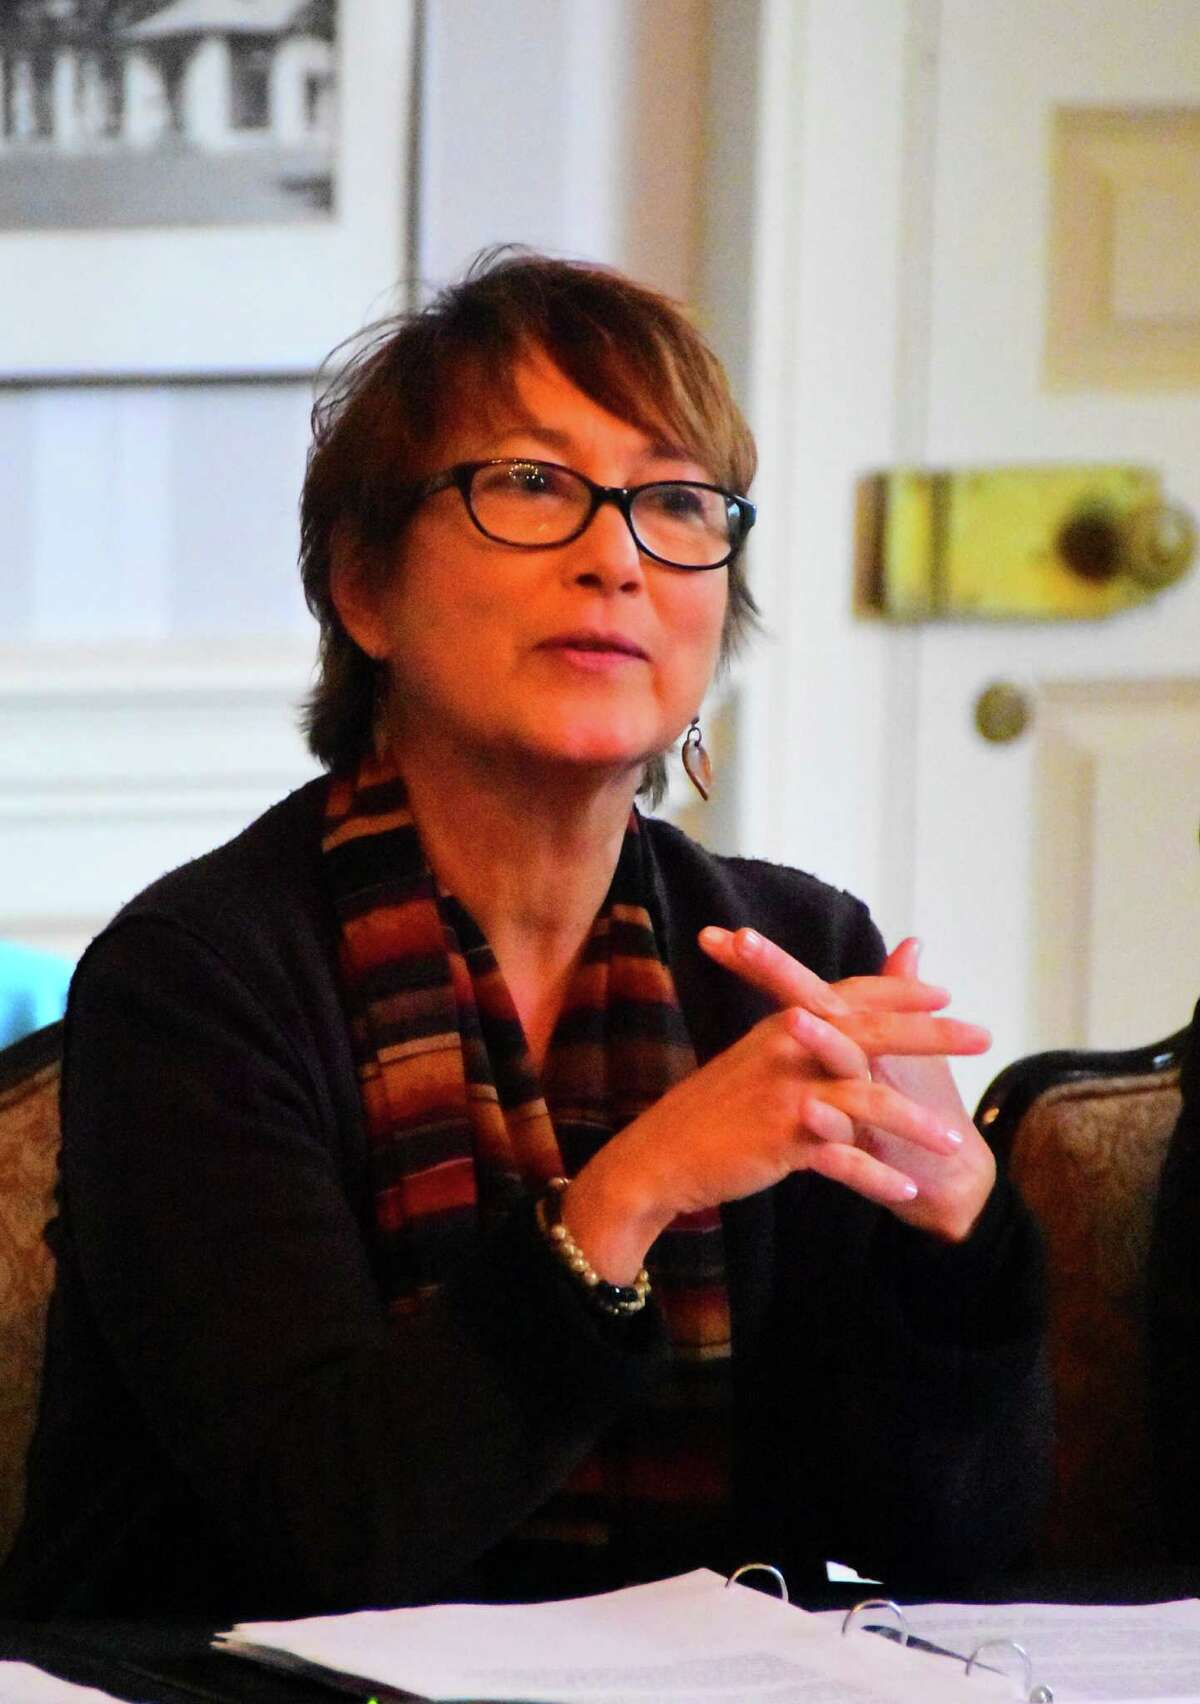 Elizabeth Sobol, the new president and CEO of the Saratoga Performing Arts Center, speaks to board members and staff during a meeting at the Hall of Springs in Saratoga Springs on Thursday, Oct. 13, 2016. (Steve Barnes/Times Union)